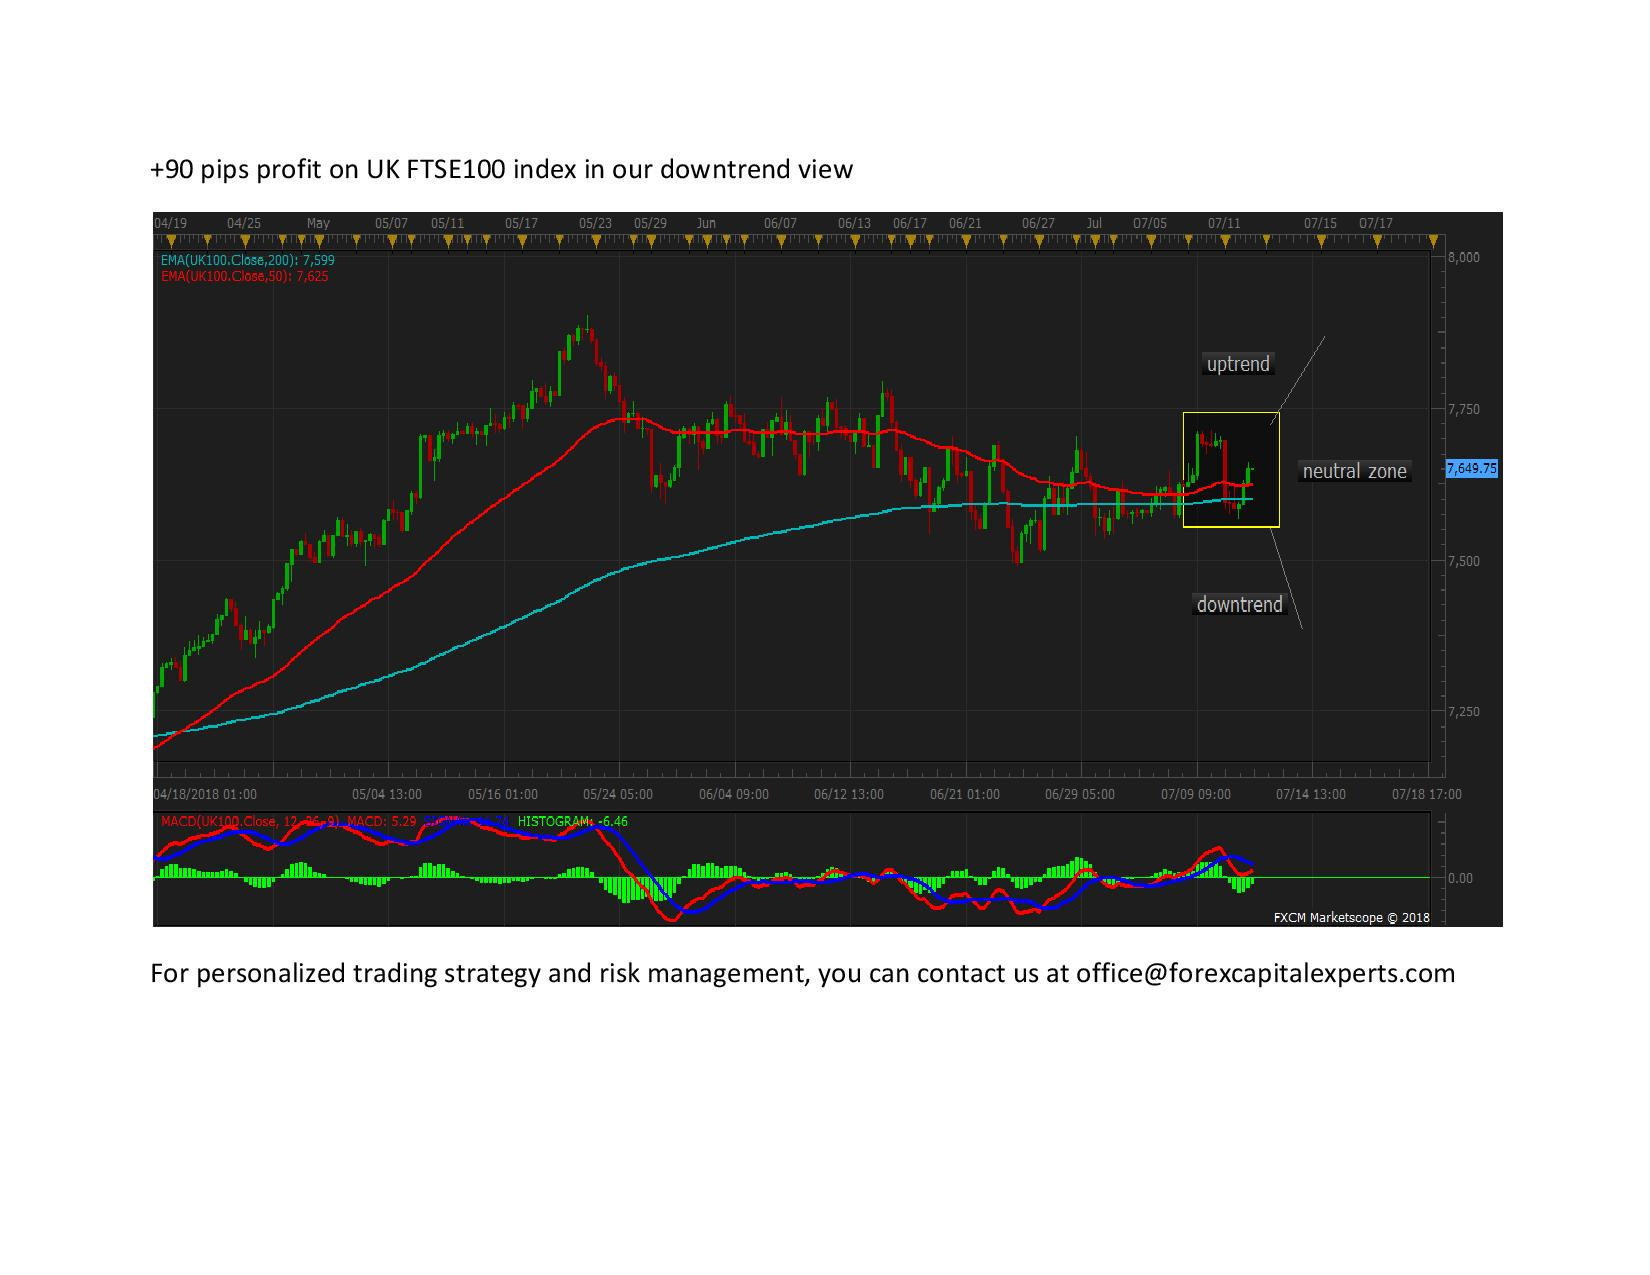 90 pips profit on UK FTSE100 index in our downtrend view page 001